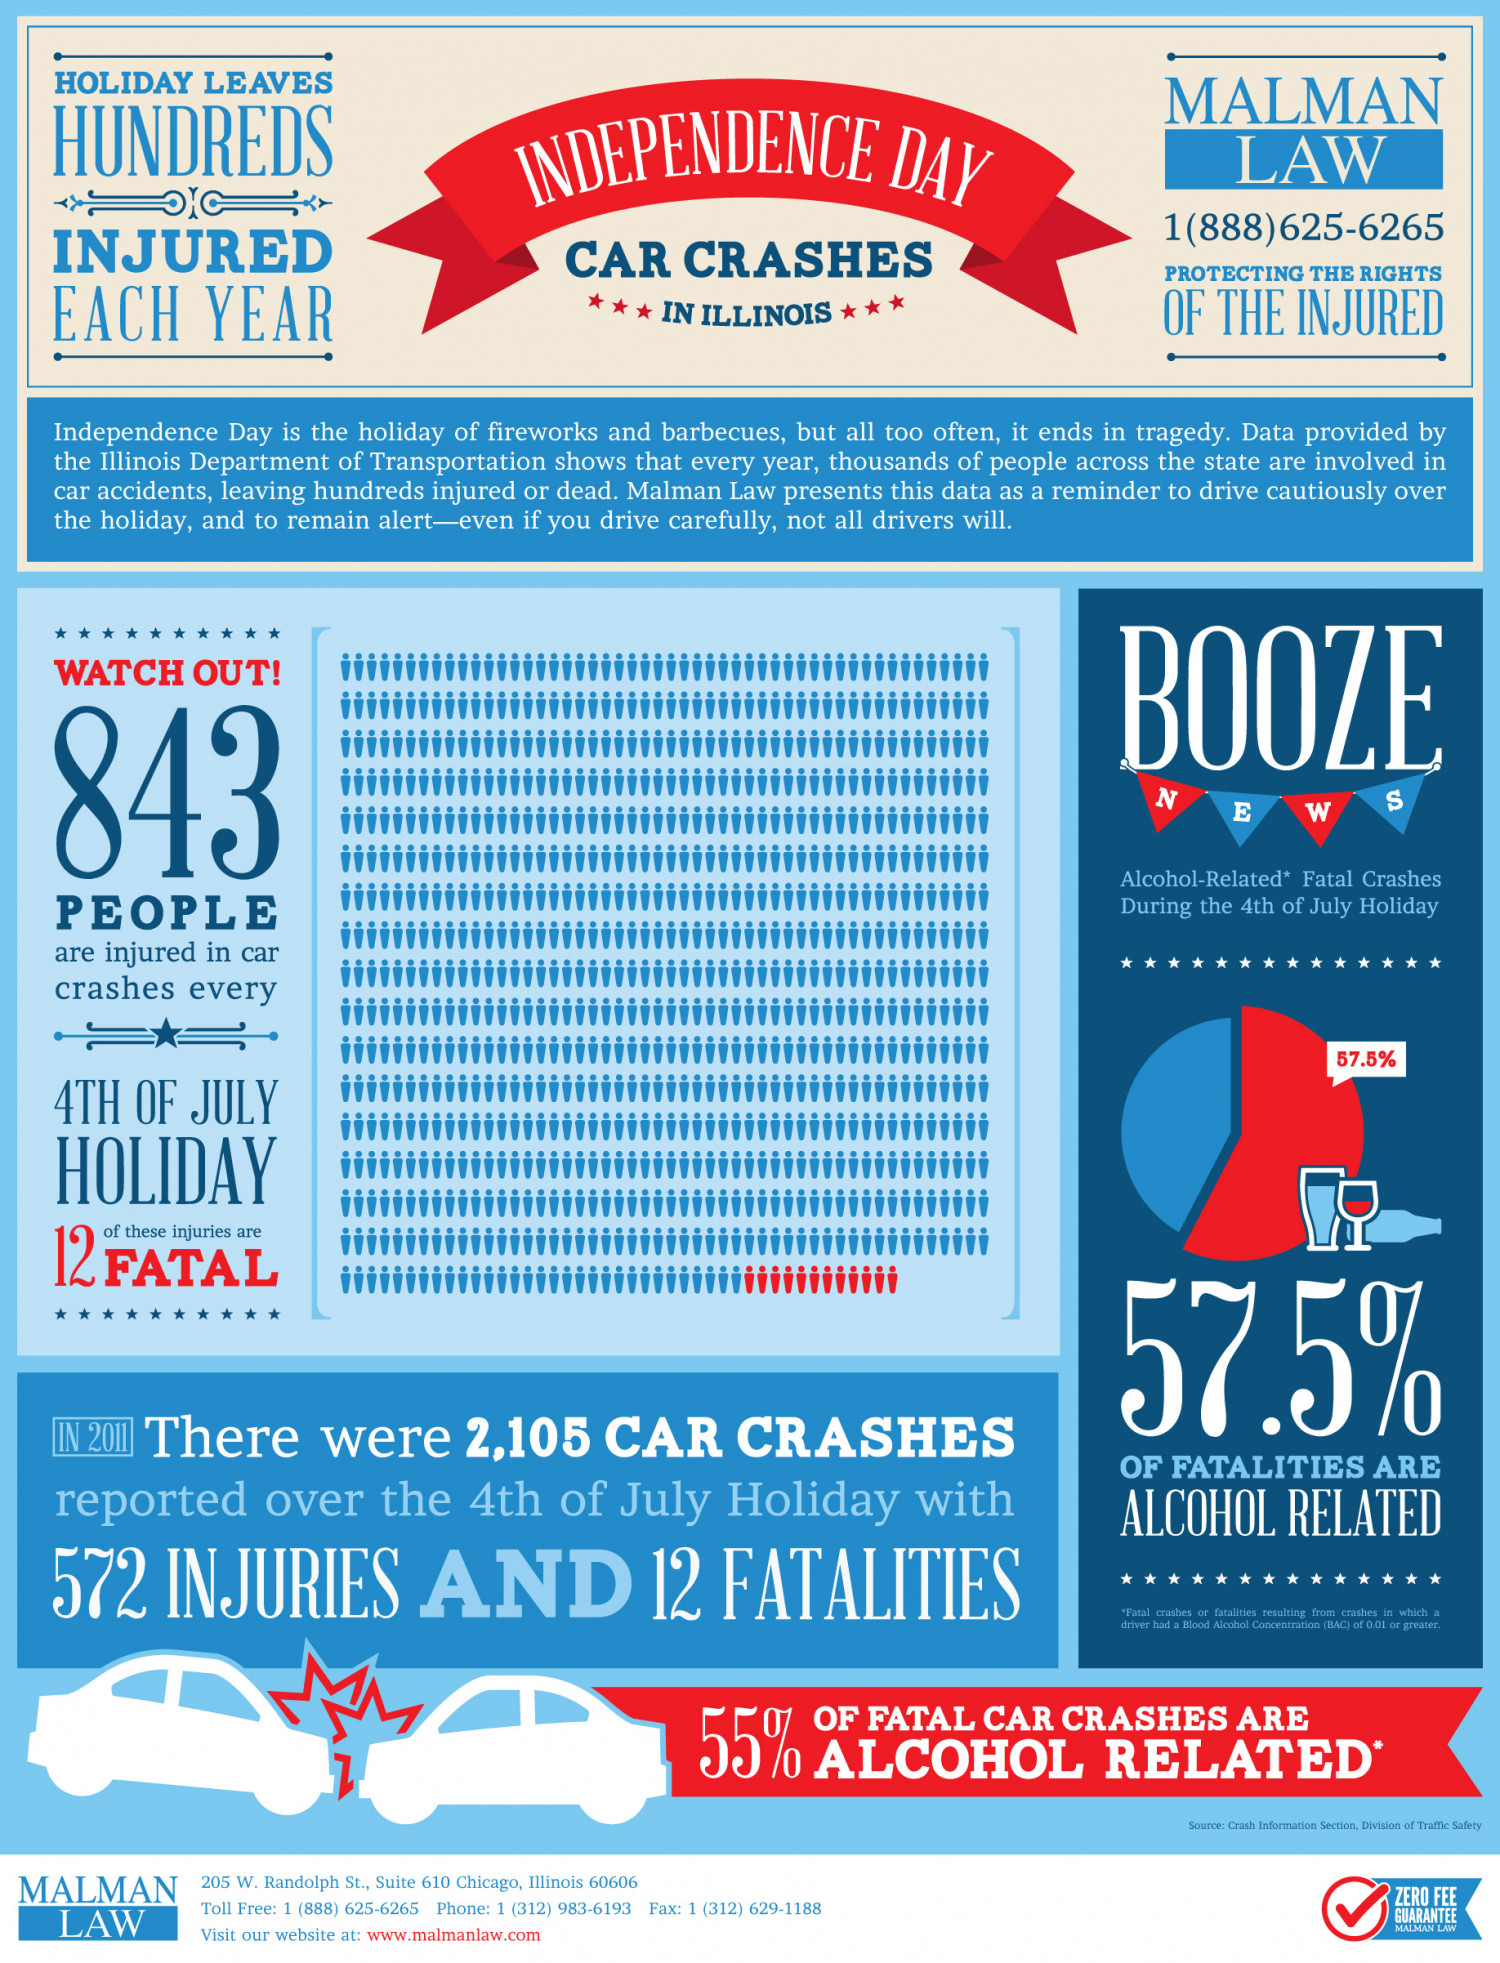 Independence Day Car Crashes In Illinois Infographic